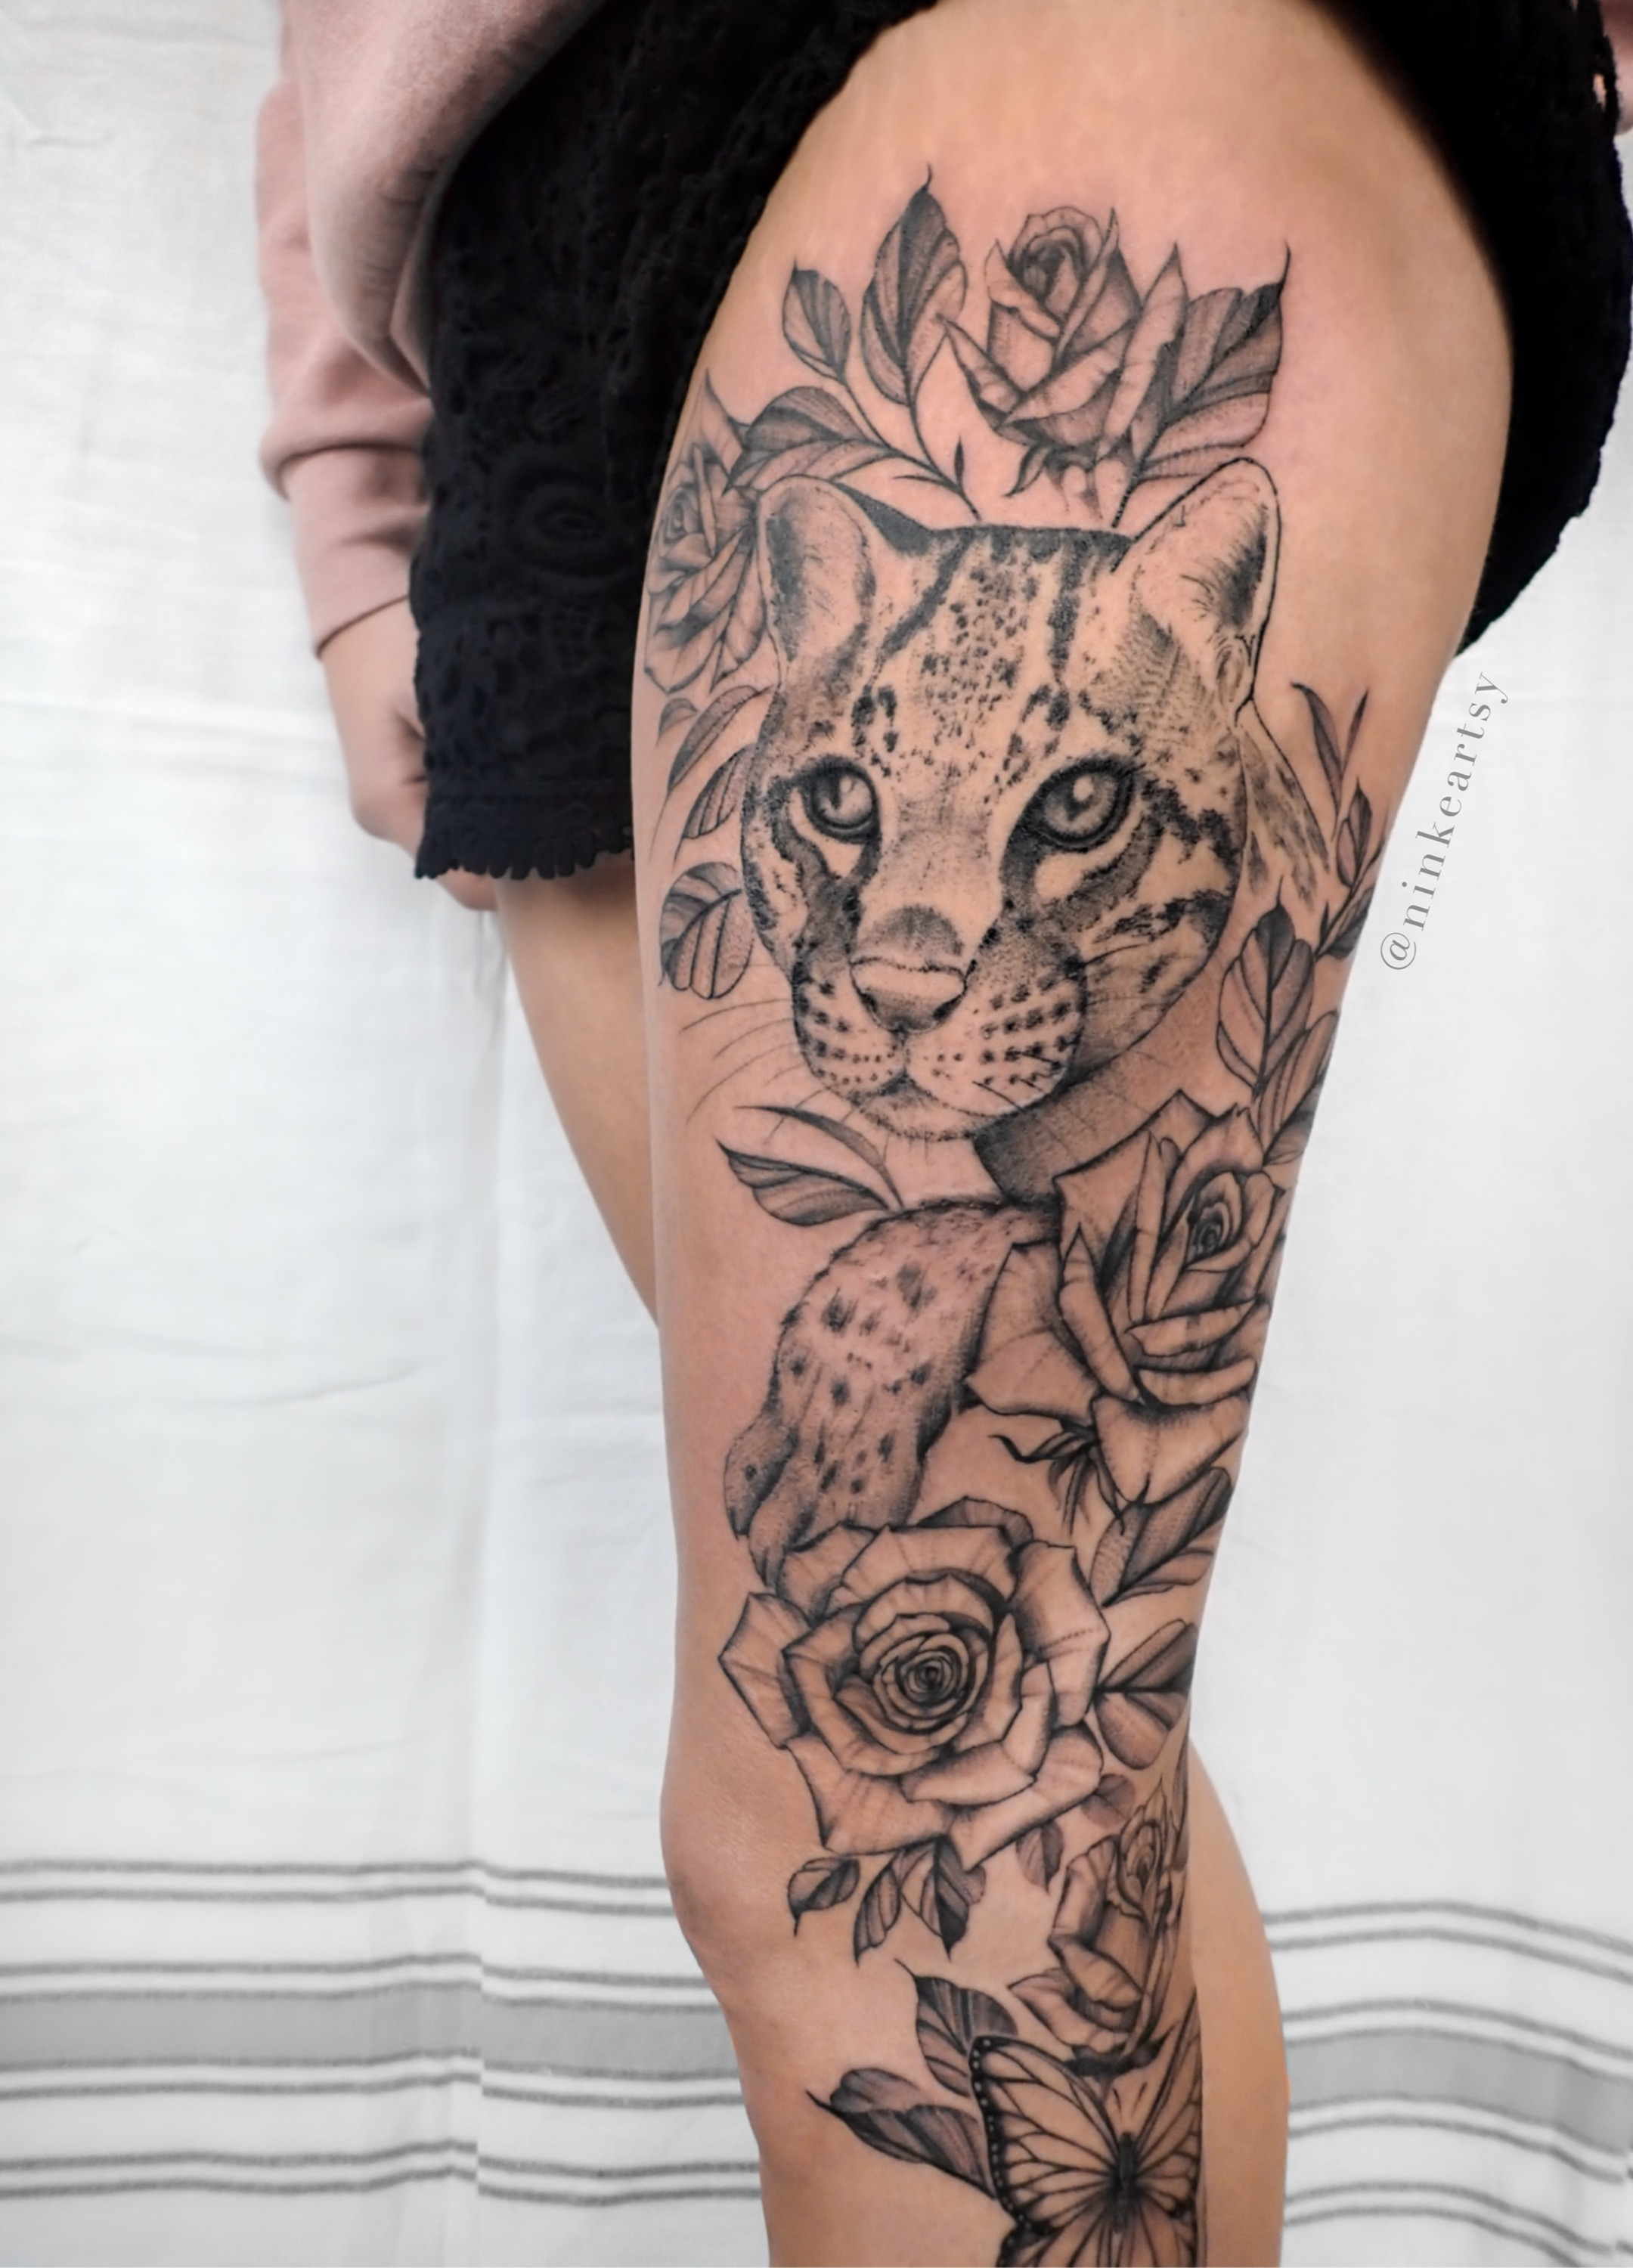 ocelot cat and roses